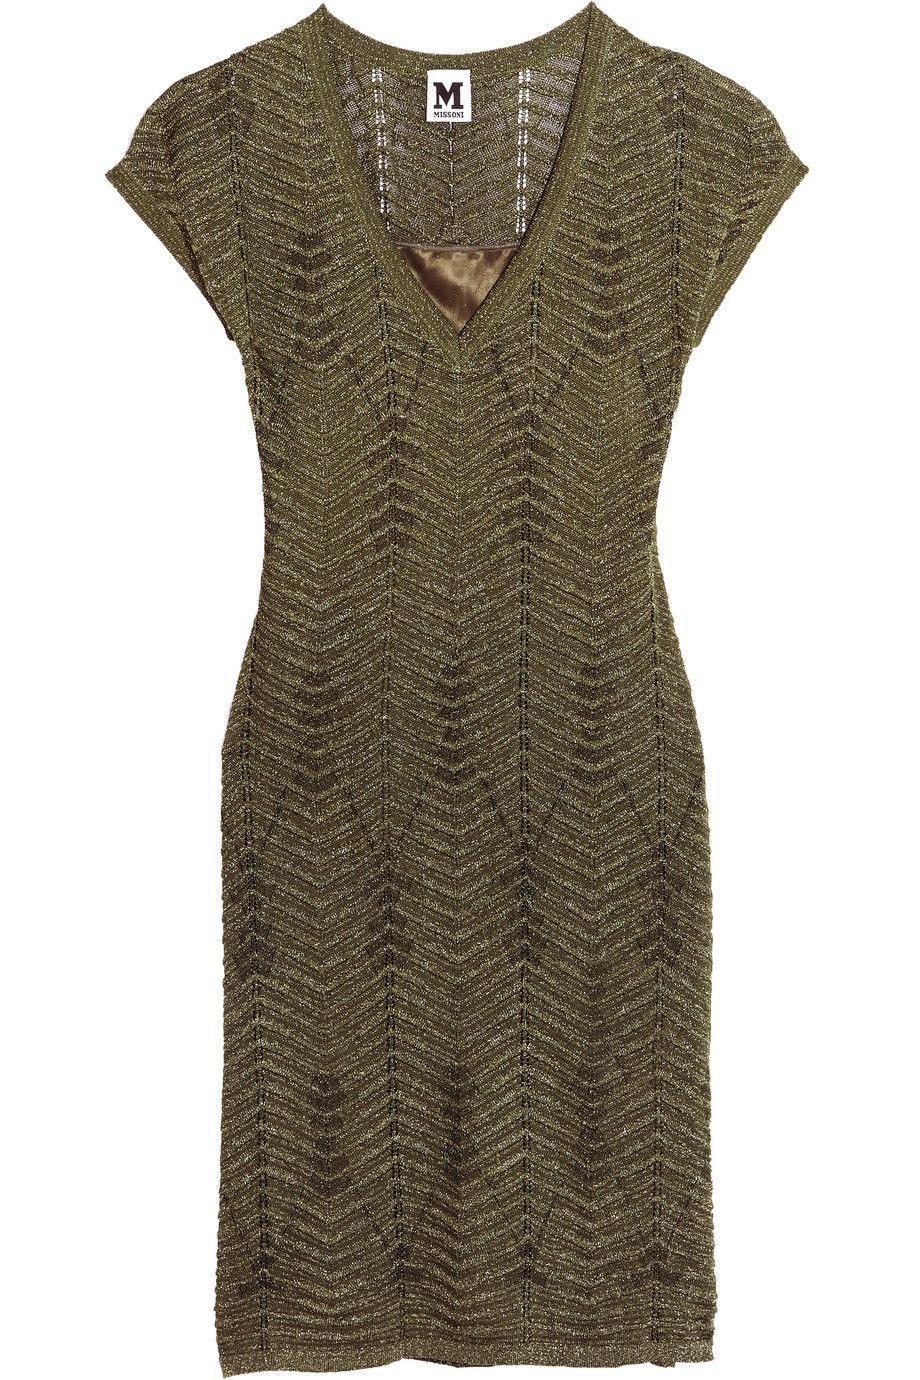 Shop on-sale M Missoni Metallic crochet-knit dress. Browse other discount designer Dresses & more on The Most Fashionable Fashion Outlet, THE OUTNET.COM